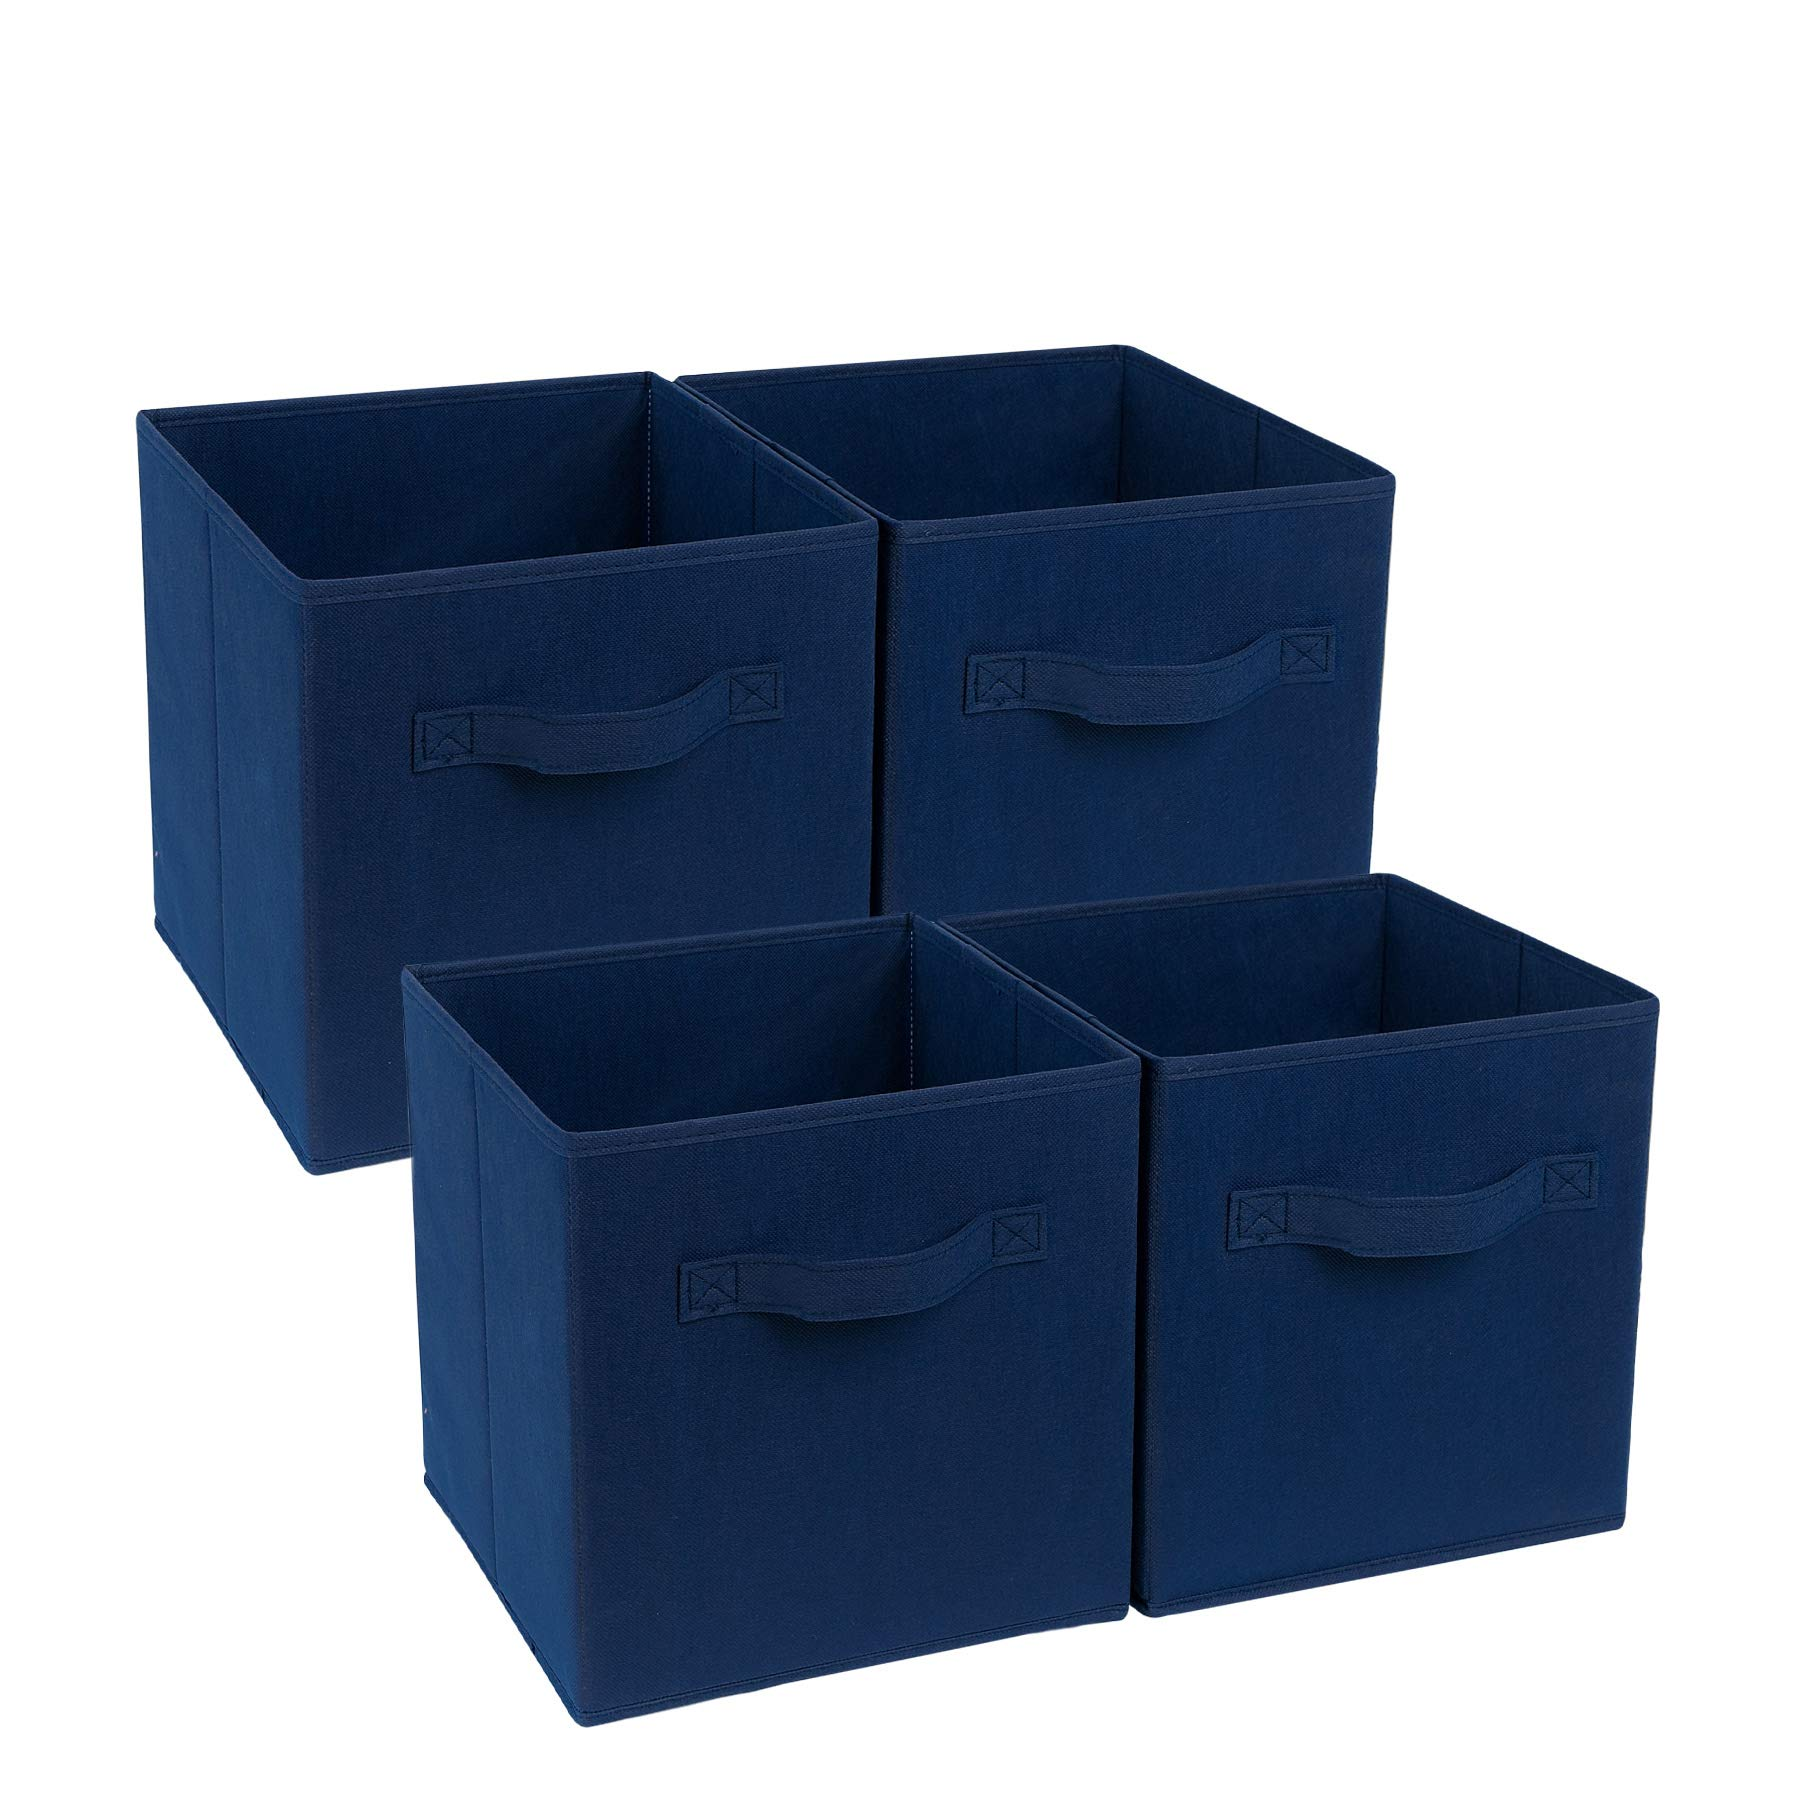 4-Cube Heavy Duty Storage Container, Zonyon Foldable Fabric Storage Cube,Basket,Bookshelf Organizer,Nursery Hamper with Handle for Women,Men,Kids,Toys,Bedroom,Closet,Office,11''X11''11'',Navy Blue